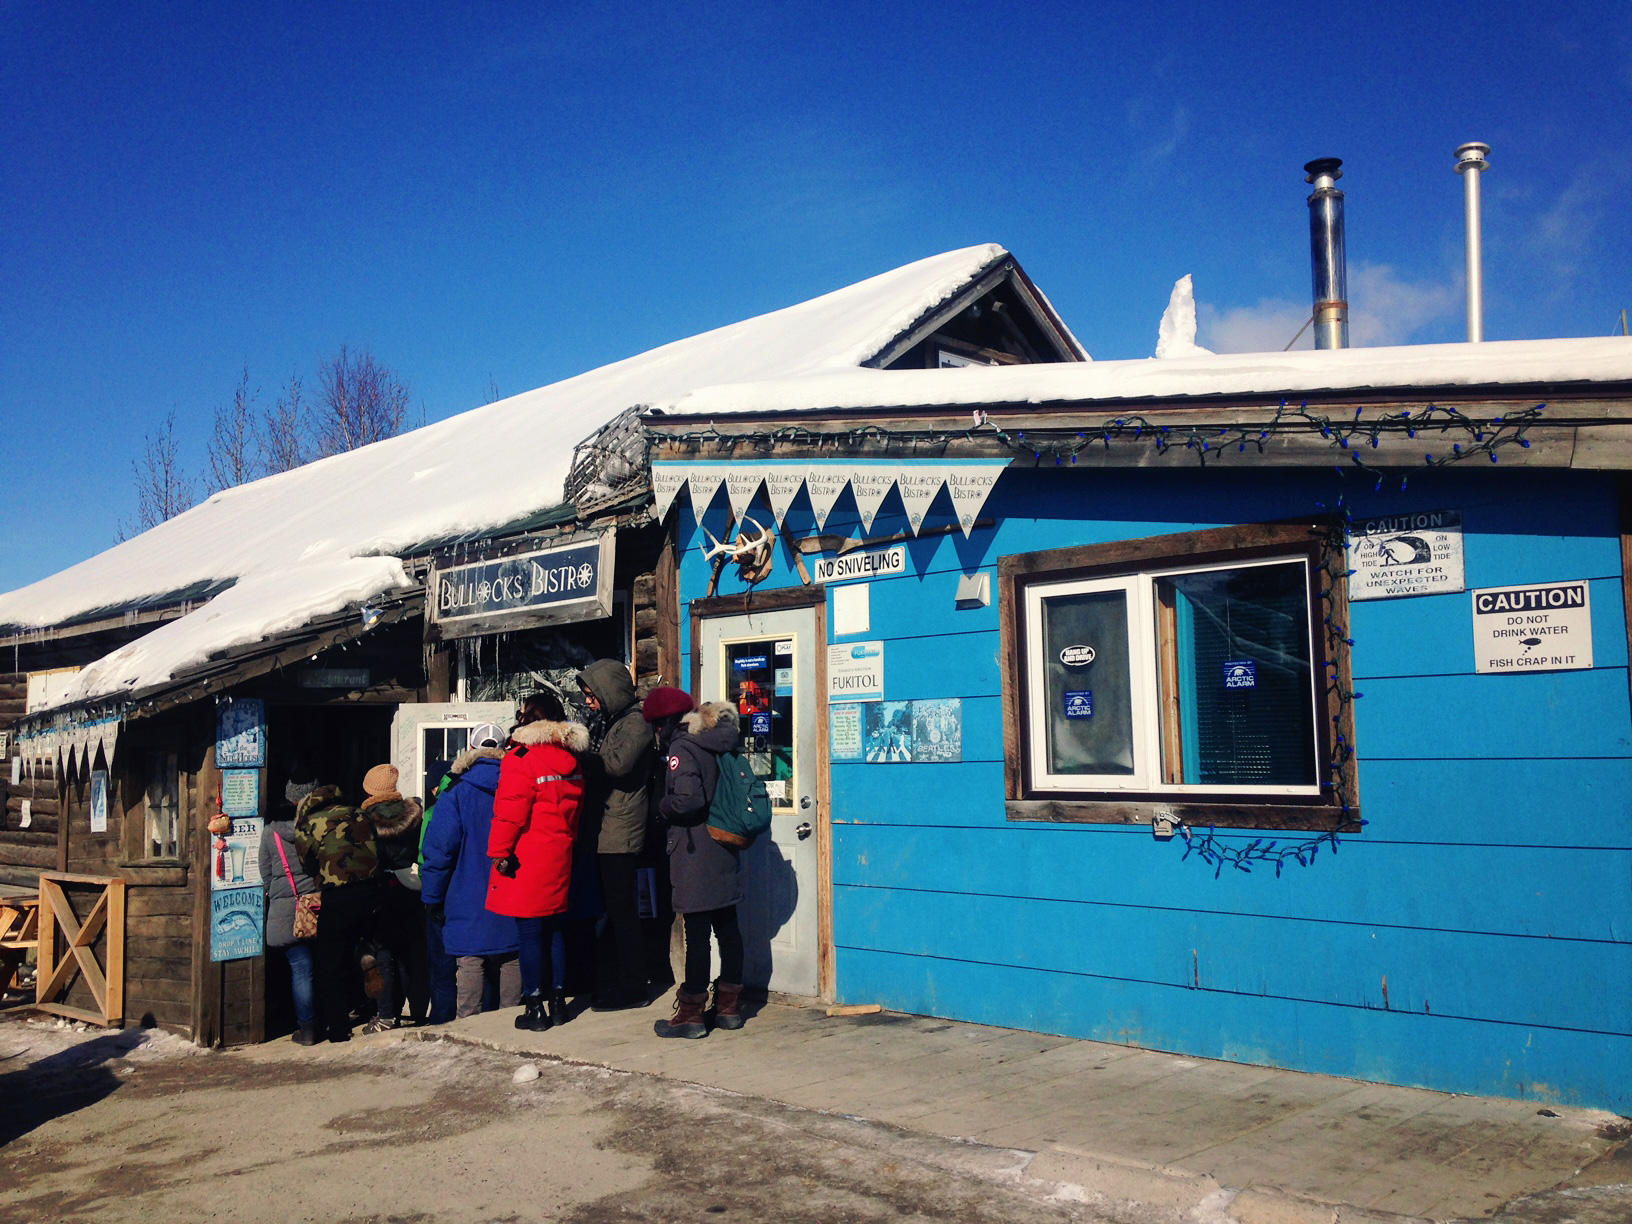 Bullocks' Bistro: Yellowknife, Northwest Territories